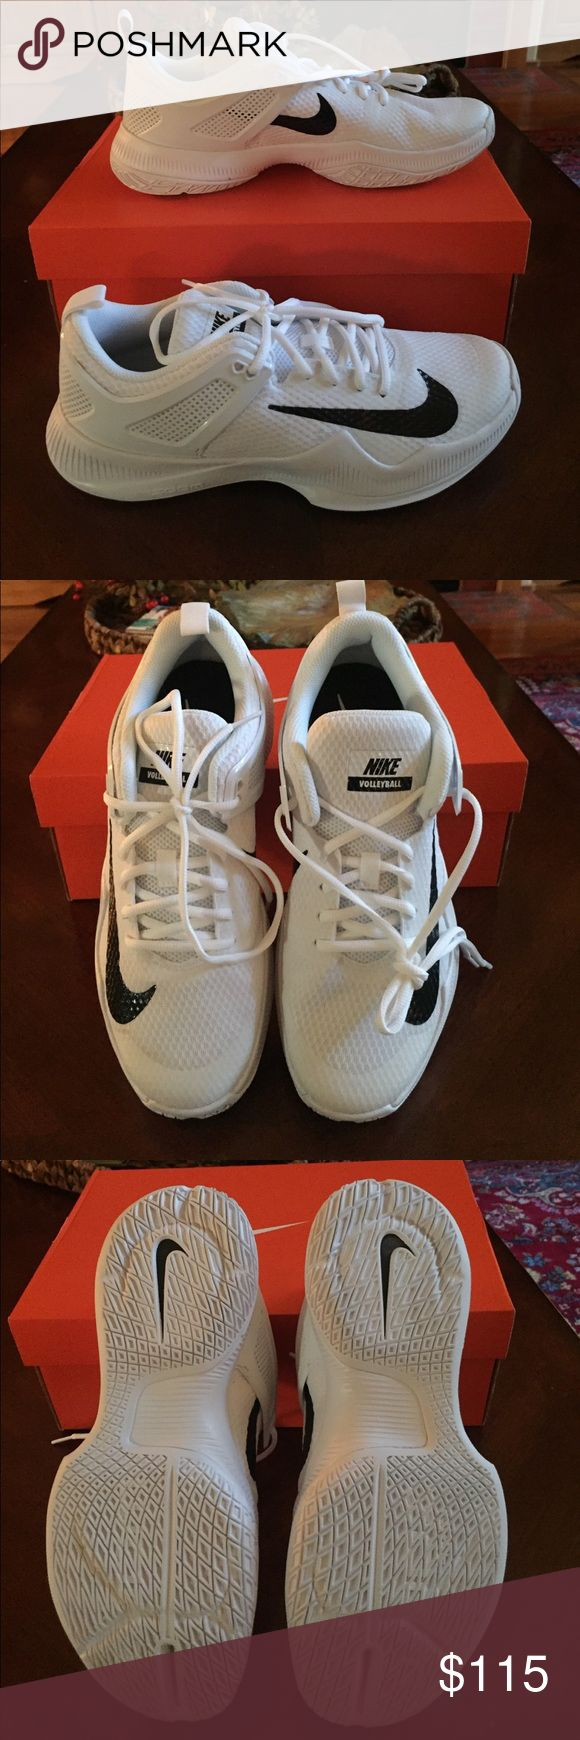 Nike Volleyball shoes, Hyperace Womens Nike Air Zoom Hyperace volleyball shoes. Brand new, box included Nike Shoes Athletic Shoes